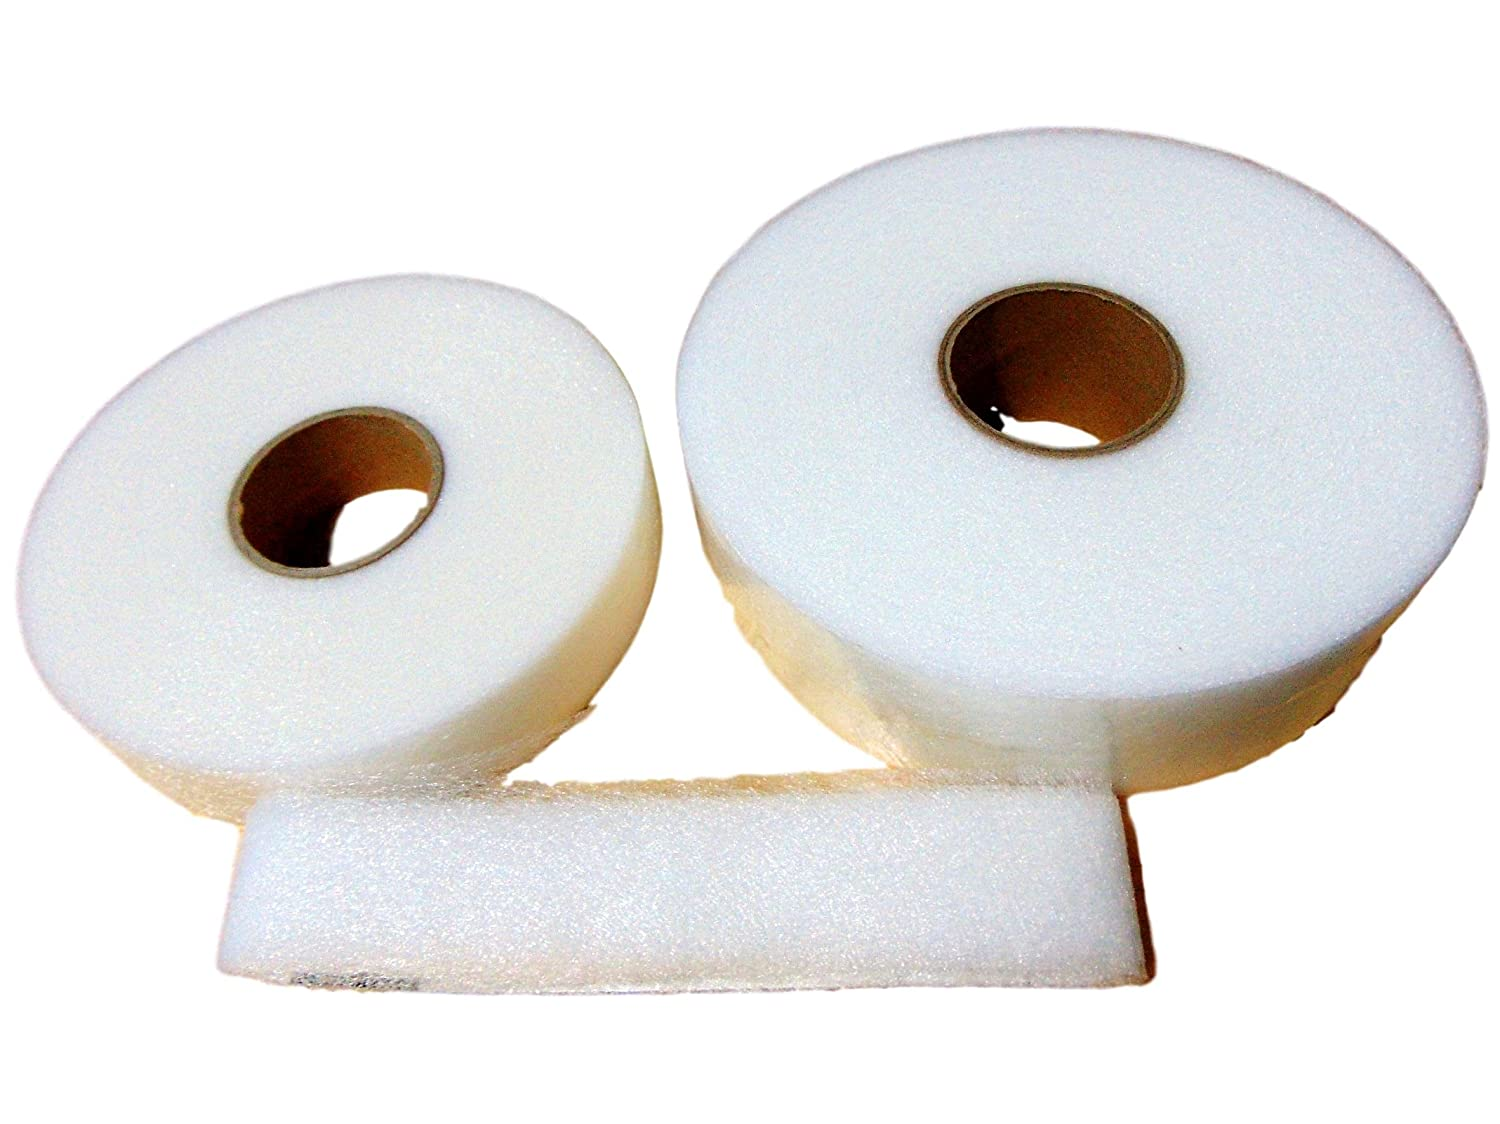 5m Washable Iron On Hemming Tape Fabric Repair 25 or 38mm Wide (24mm) Generic